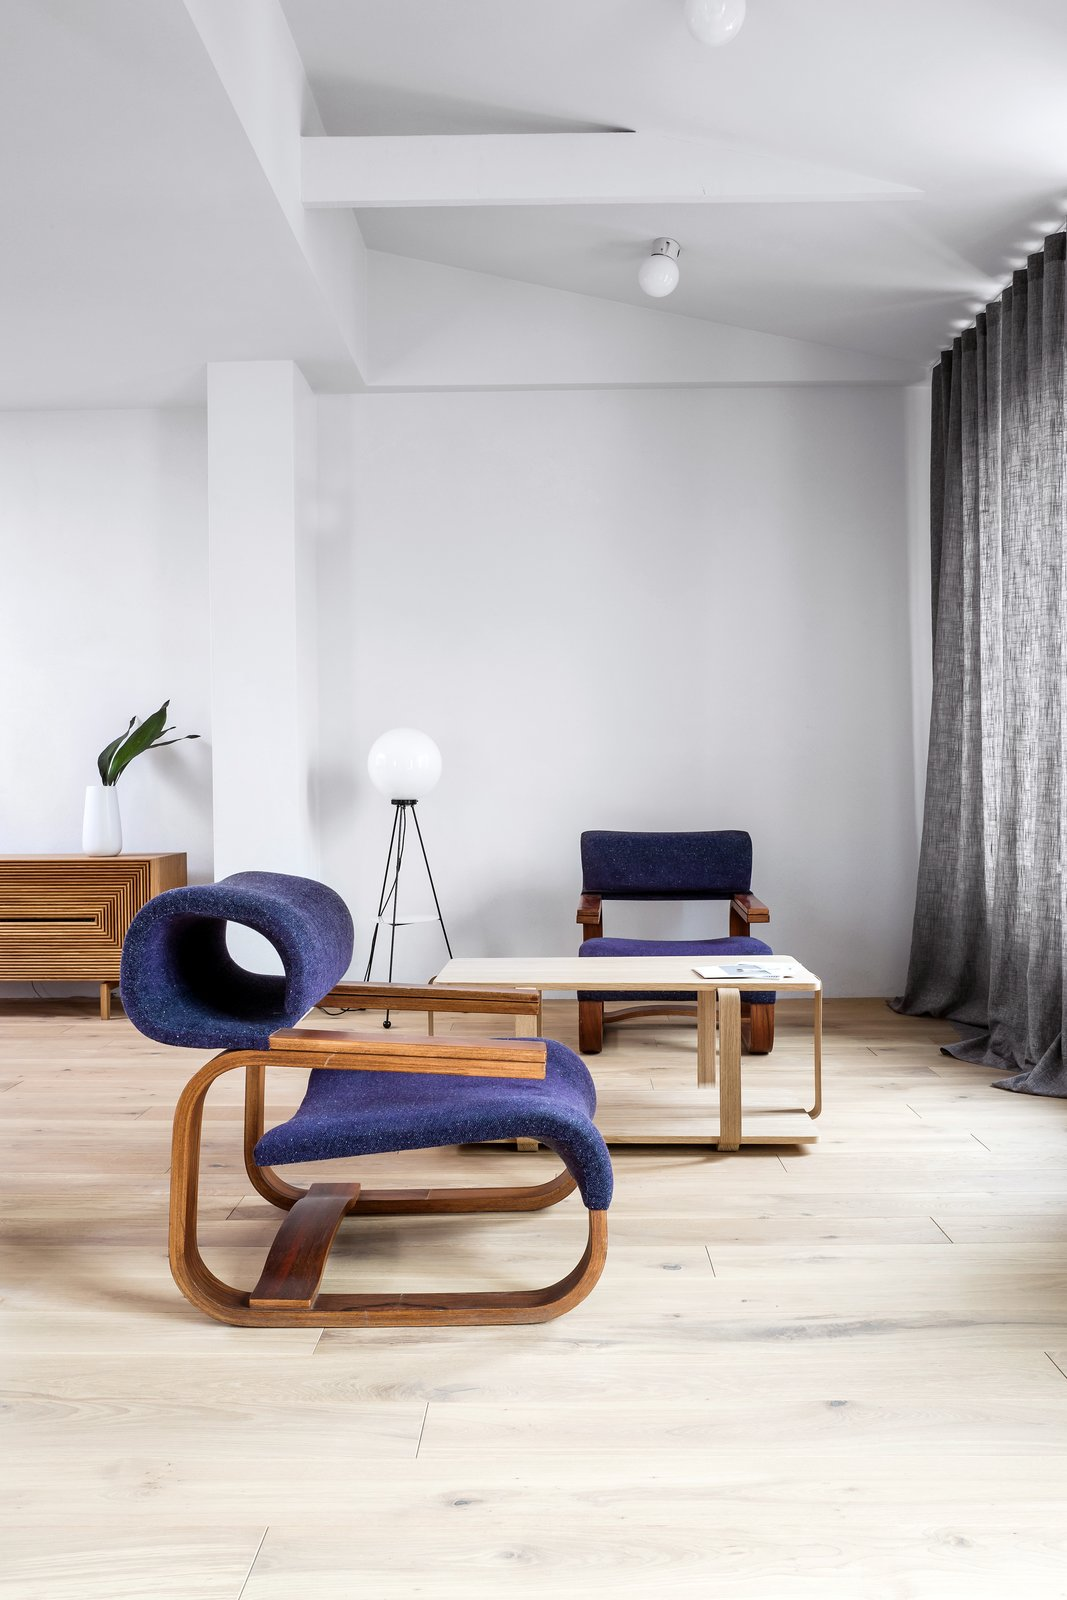 Armchair designed by Jan Bocan (1972) A Family's Loft in Poland Gets a Minimalist Renovation That's Both Elegant and Functional - Photo 2 of 12